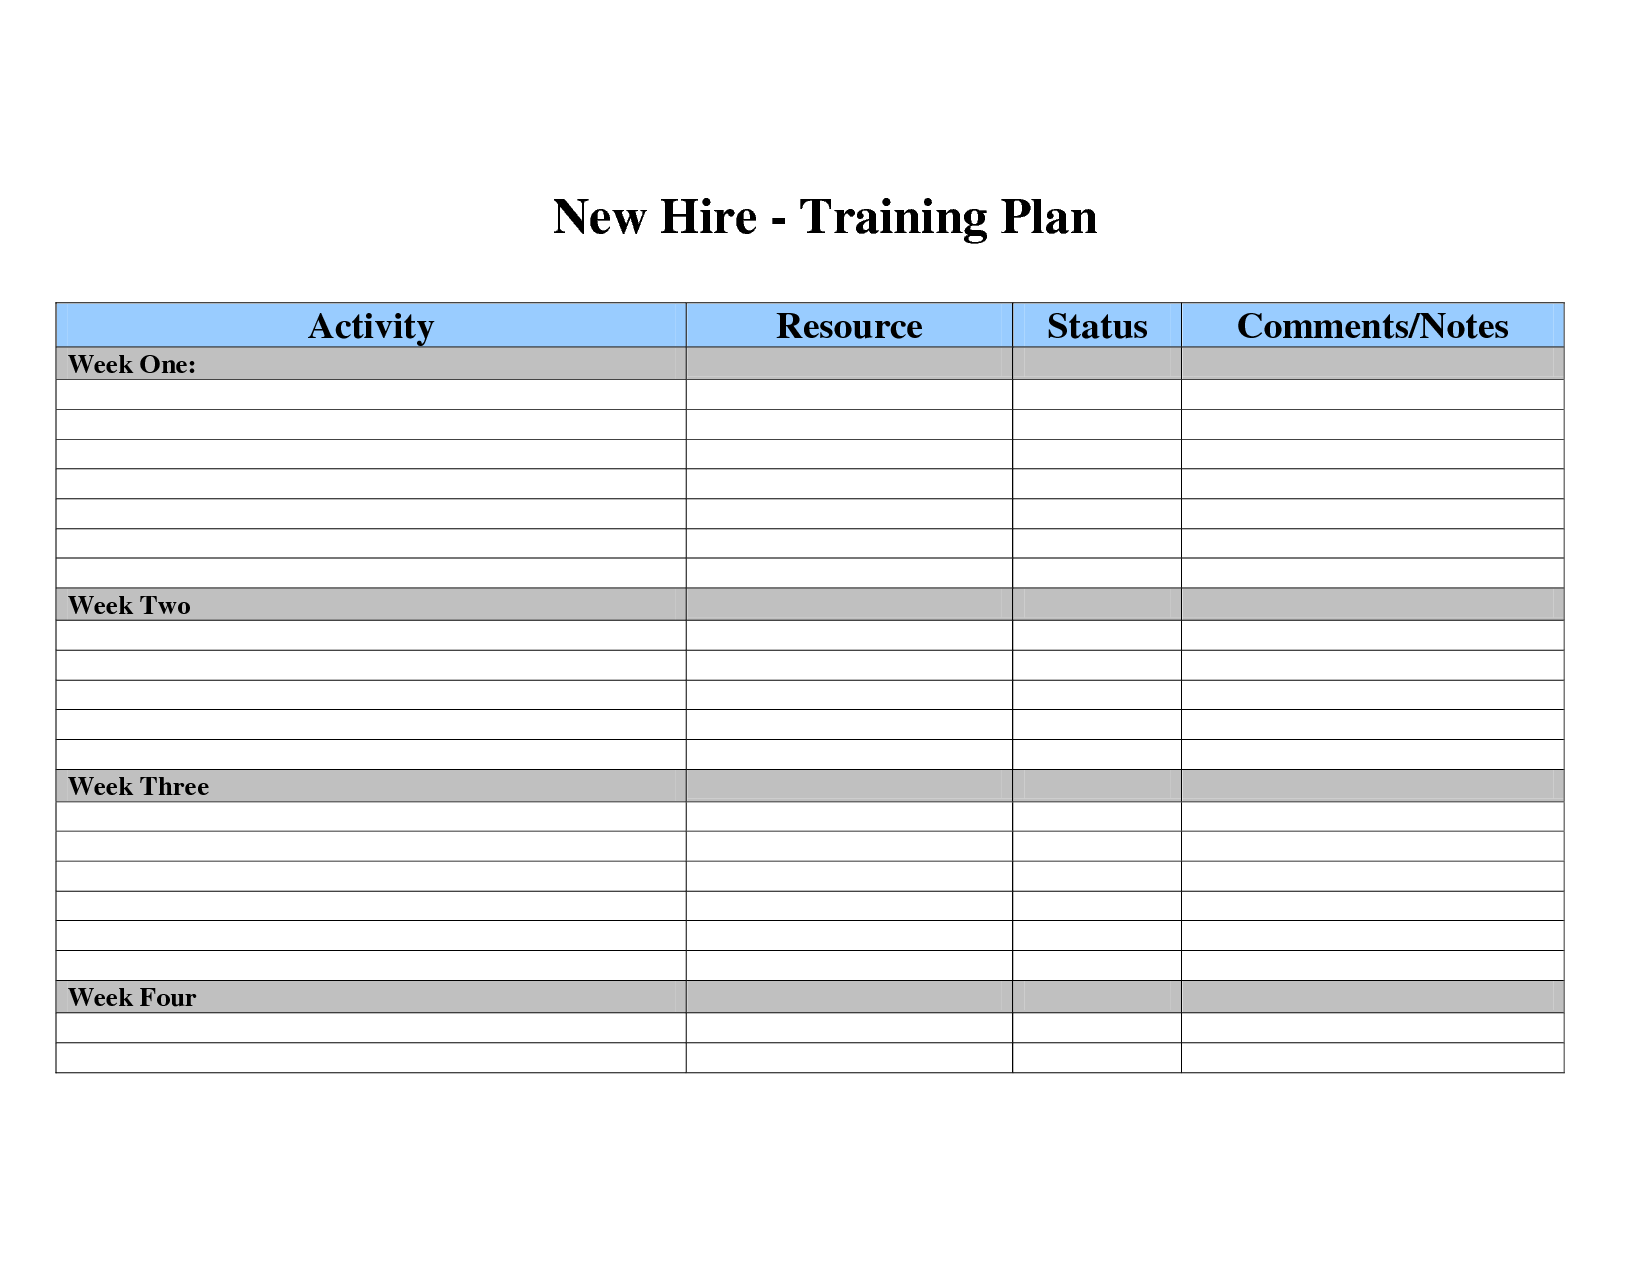 29 Images of New Hire Training Plan Template | leseriail.com